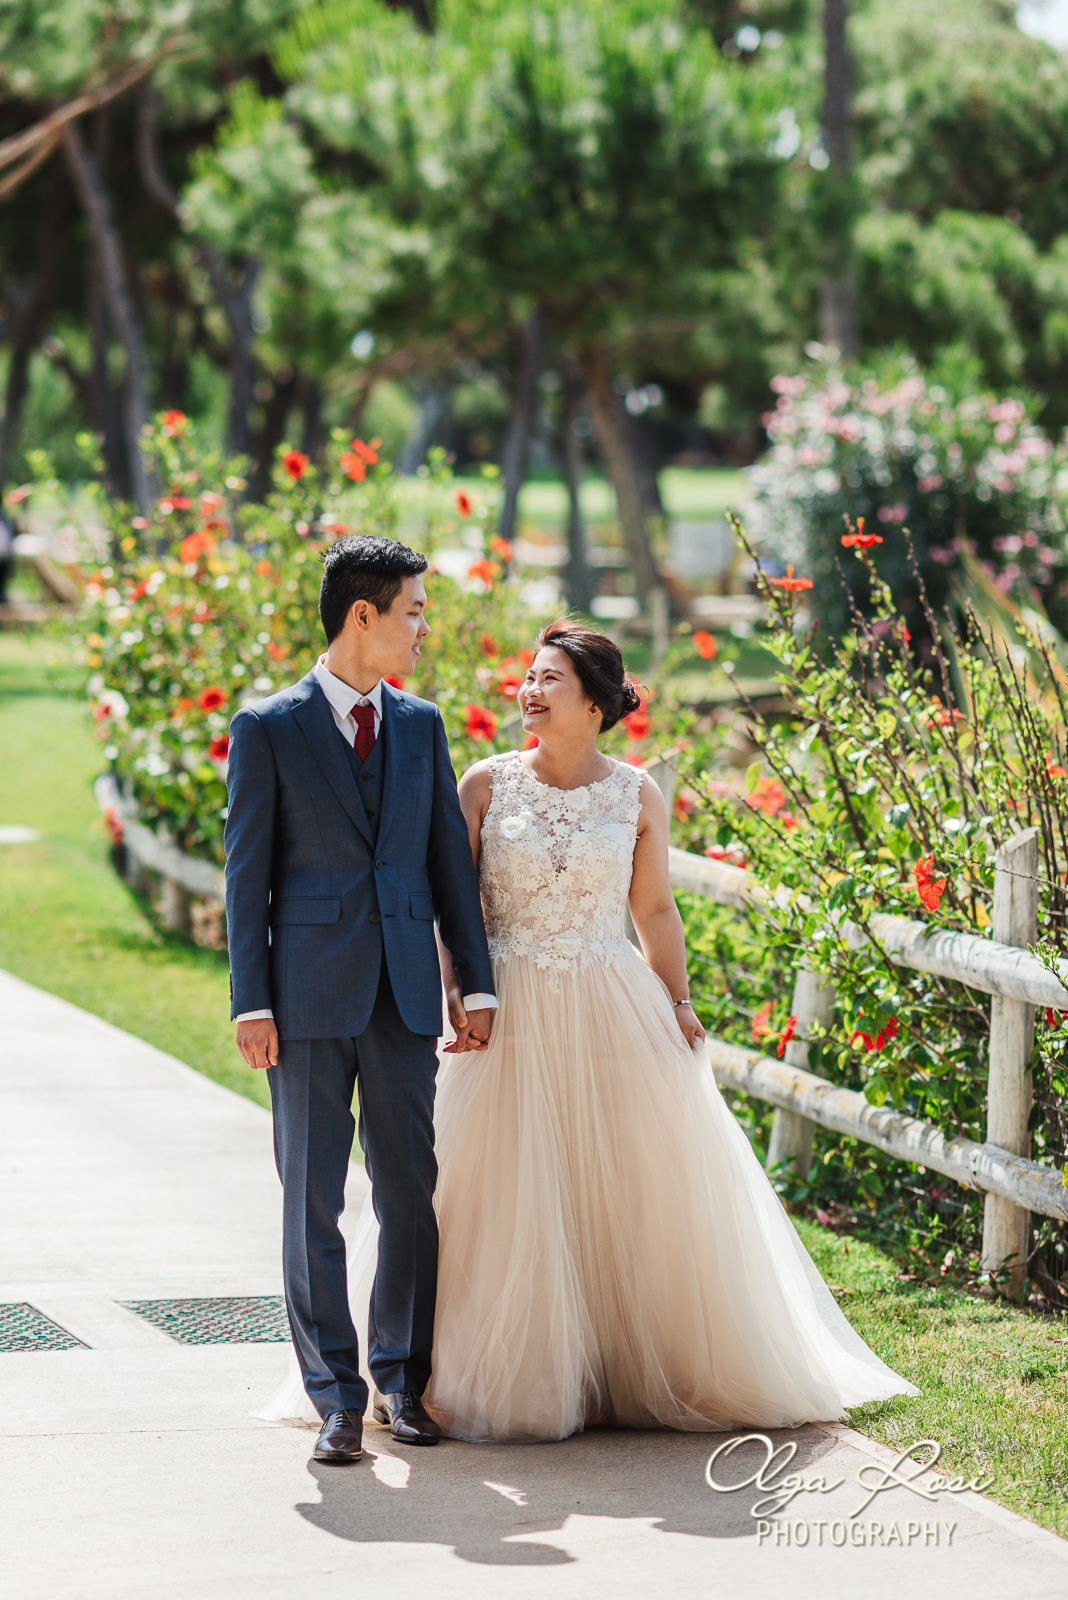 Pine Cliffs wedding photographer